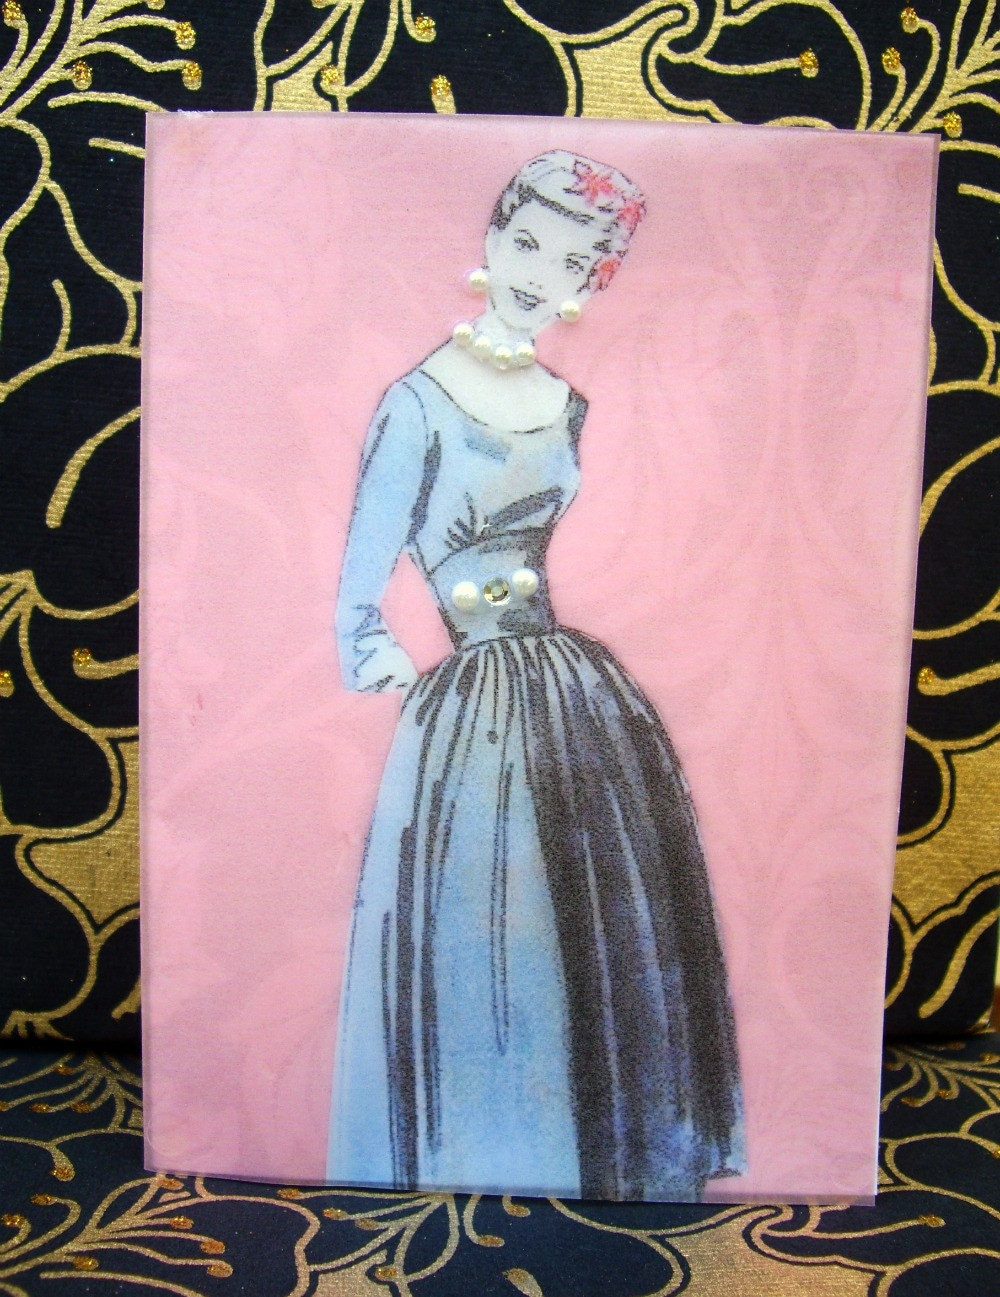 Joan Card / Vintage Printed Collection / 50s Glamour Girl / Handmade Greeting Card